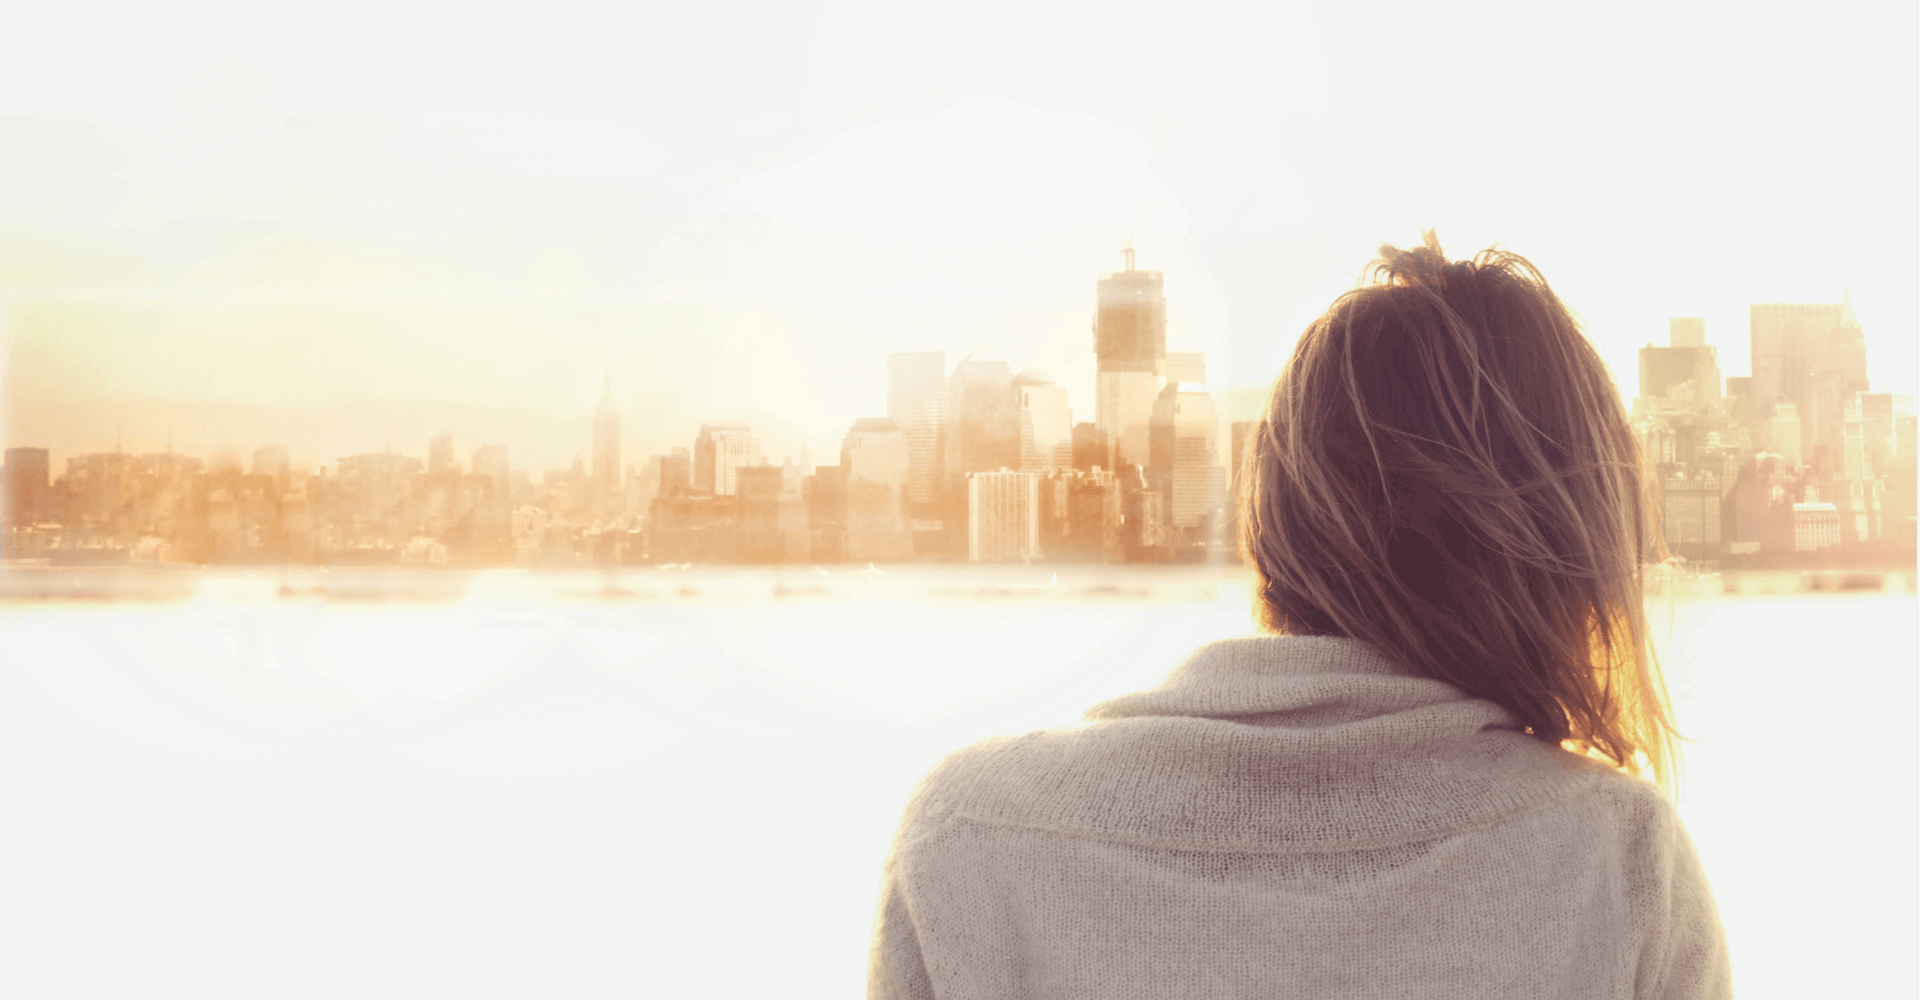 Girl and background city